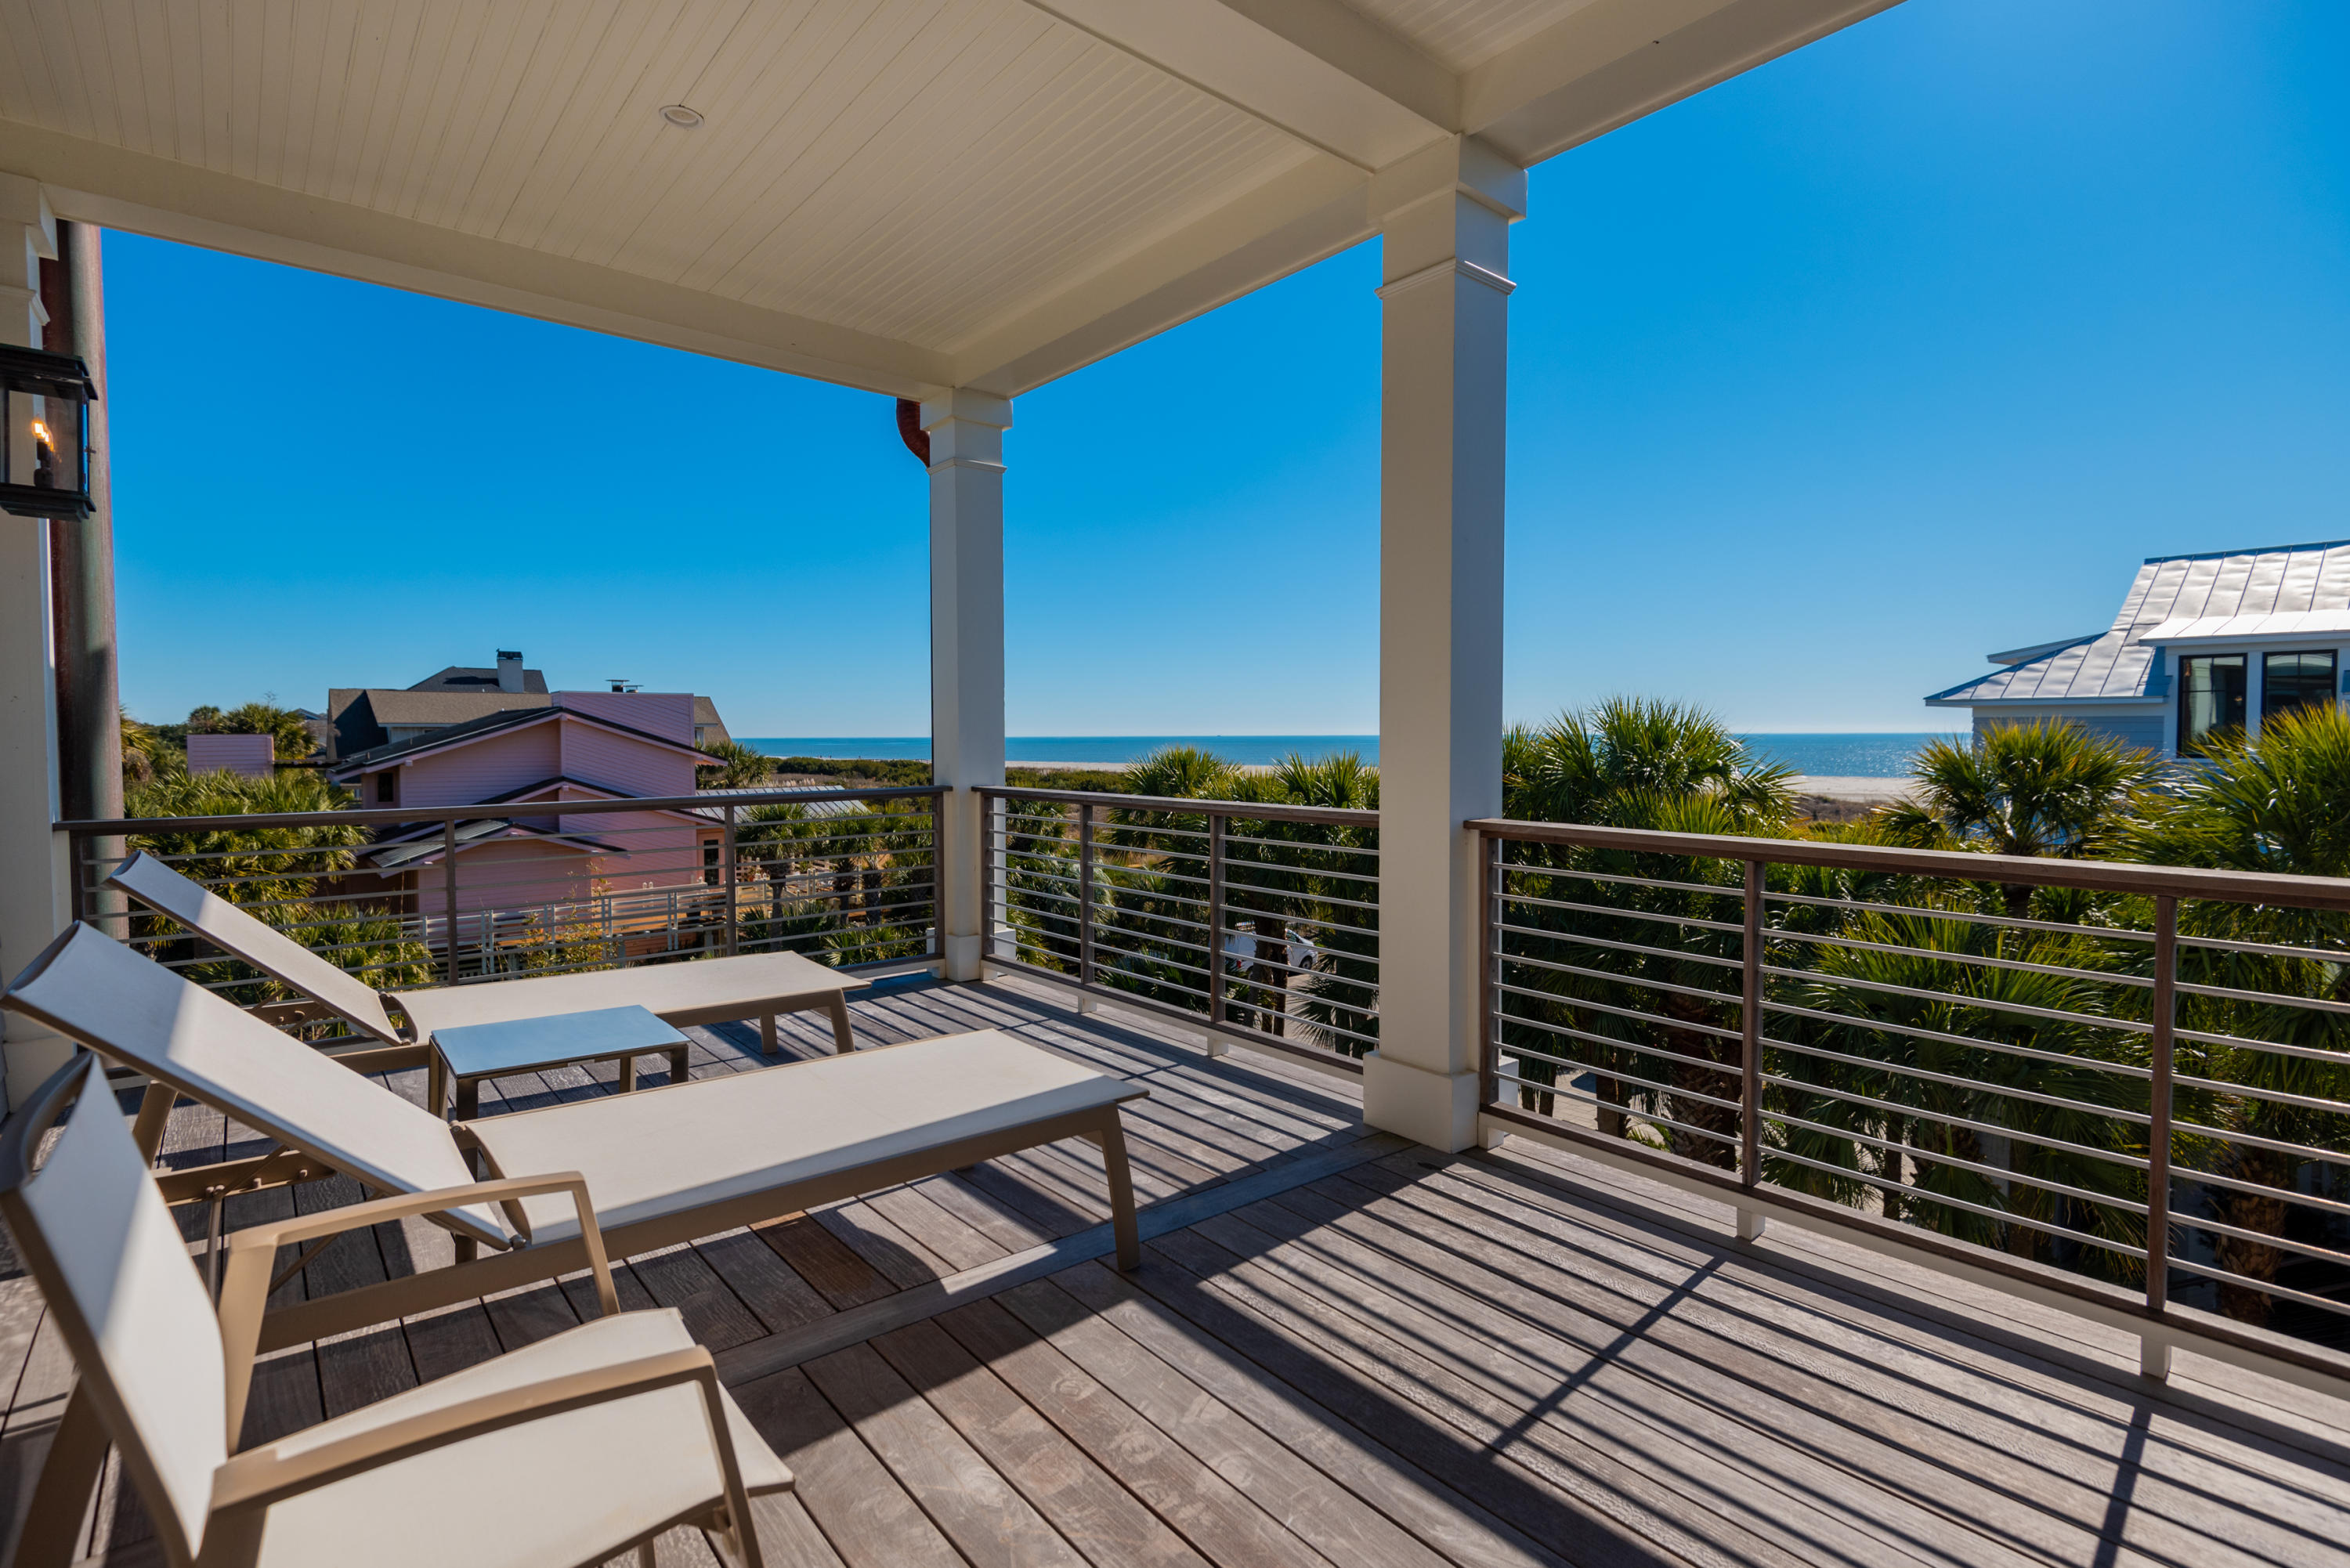 Isle of Palms Homes For Sale - 3 53, Isle of Palms, SC - 19